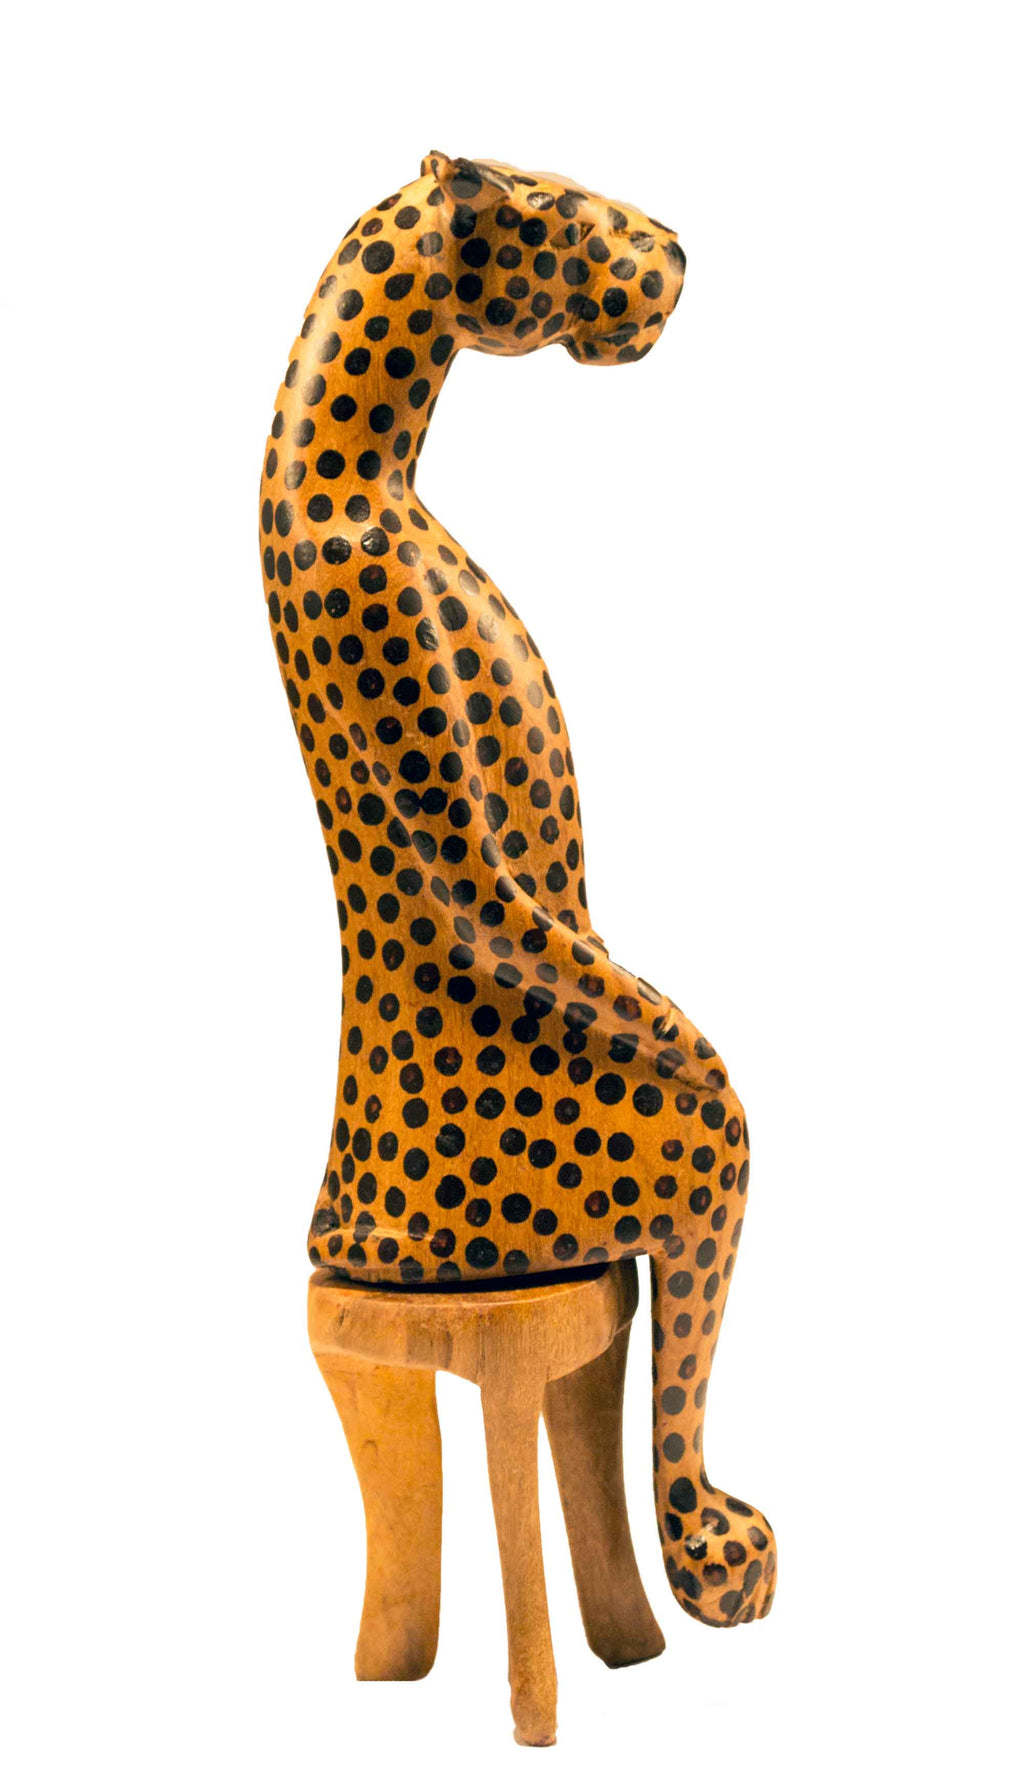 Cheetah, Profile view: Authentic Vintage Hand Carved & Hand Painted Teak Wood 'Animal Party' Figurine from Kenya